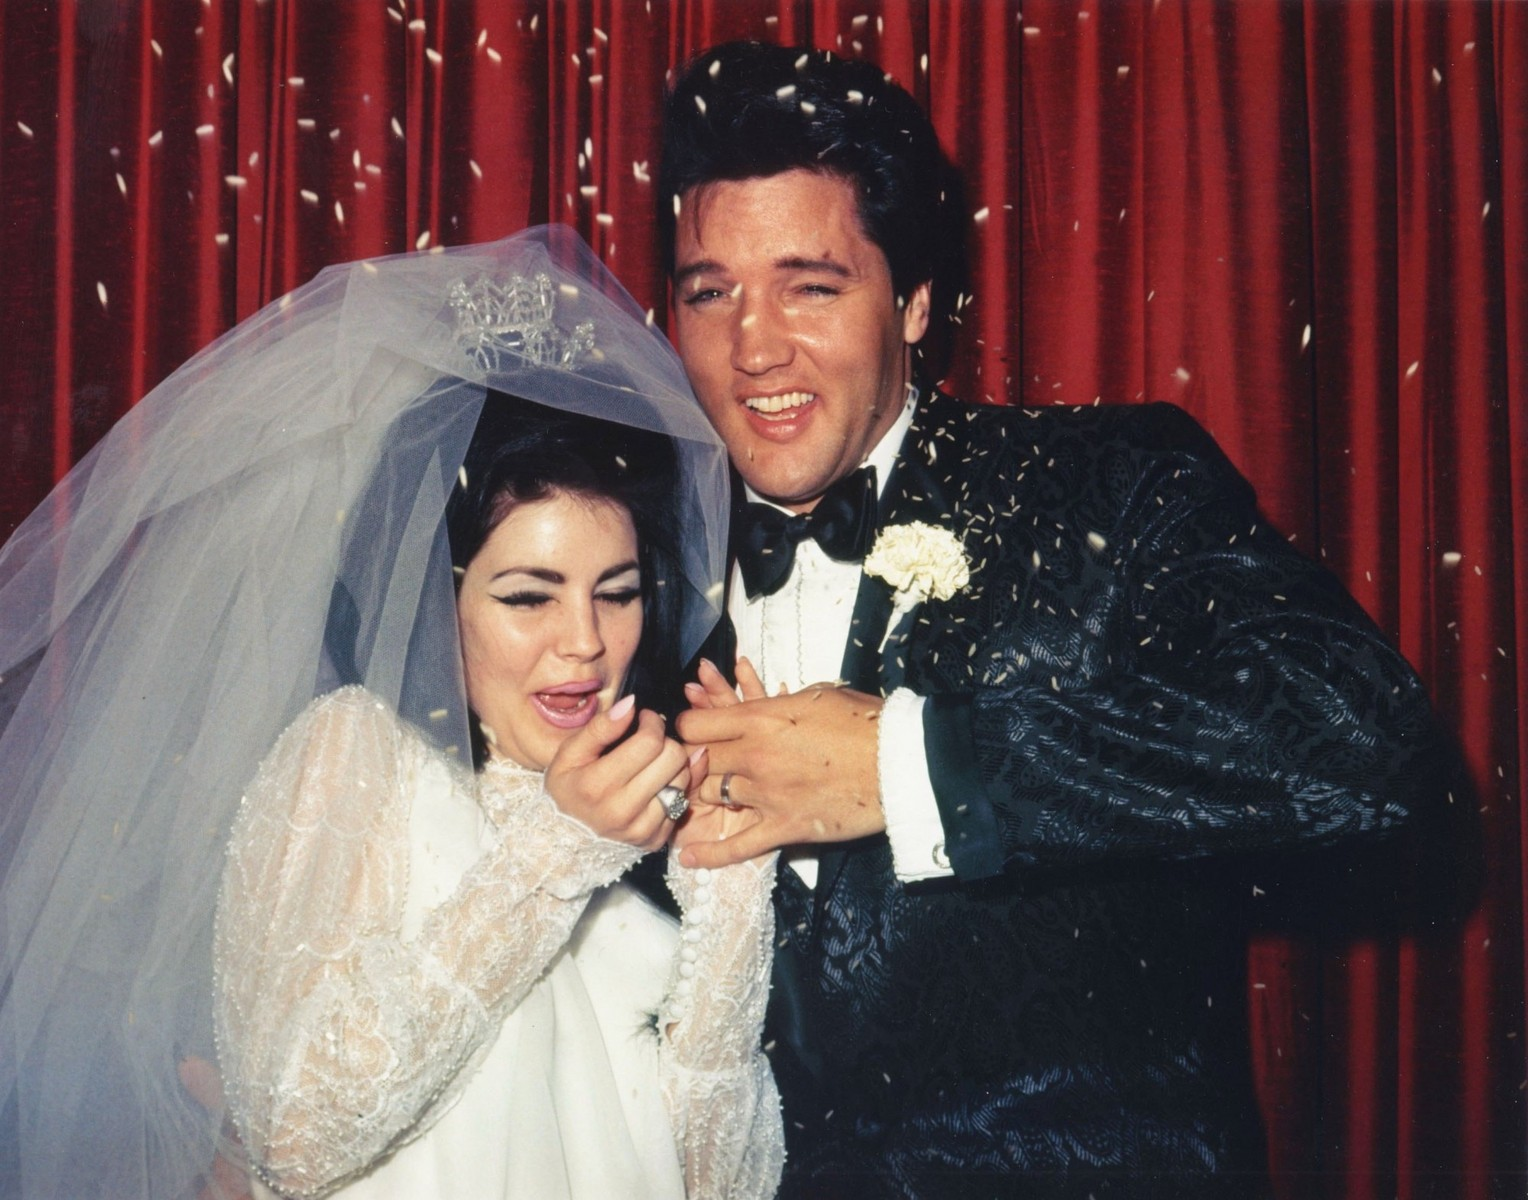 Weddings we wish we'd been invited to #1 – Elvis and Priscilla Presley